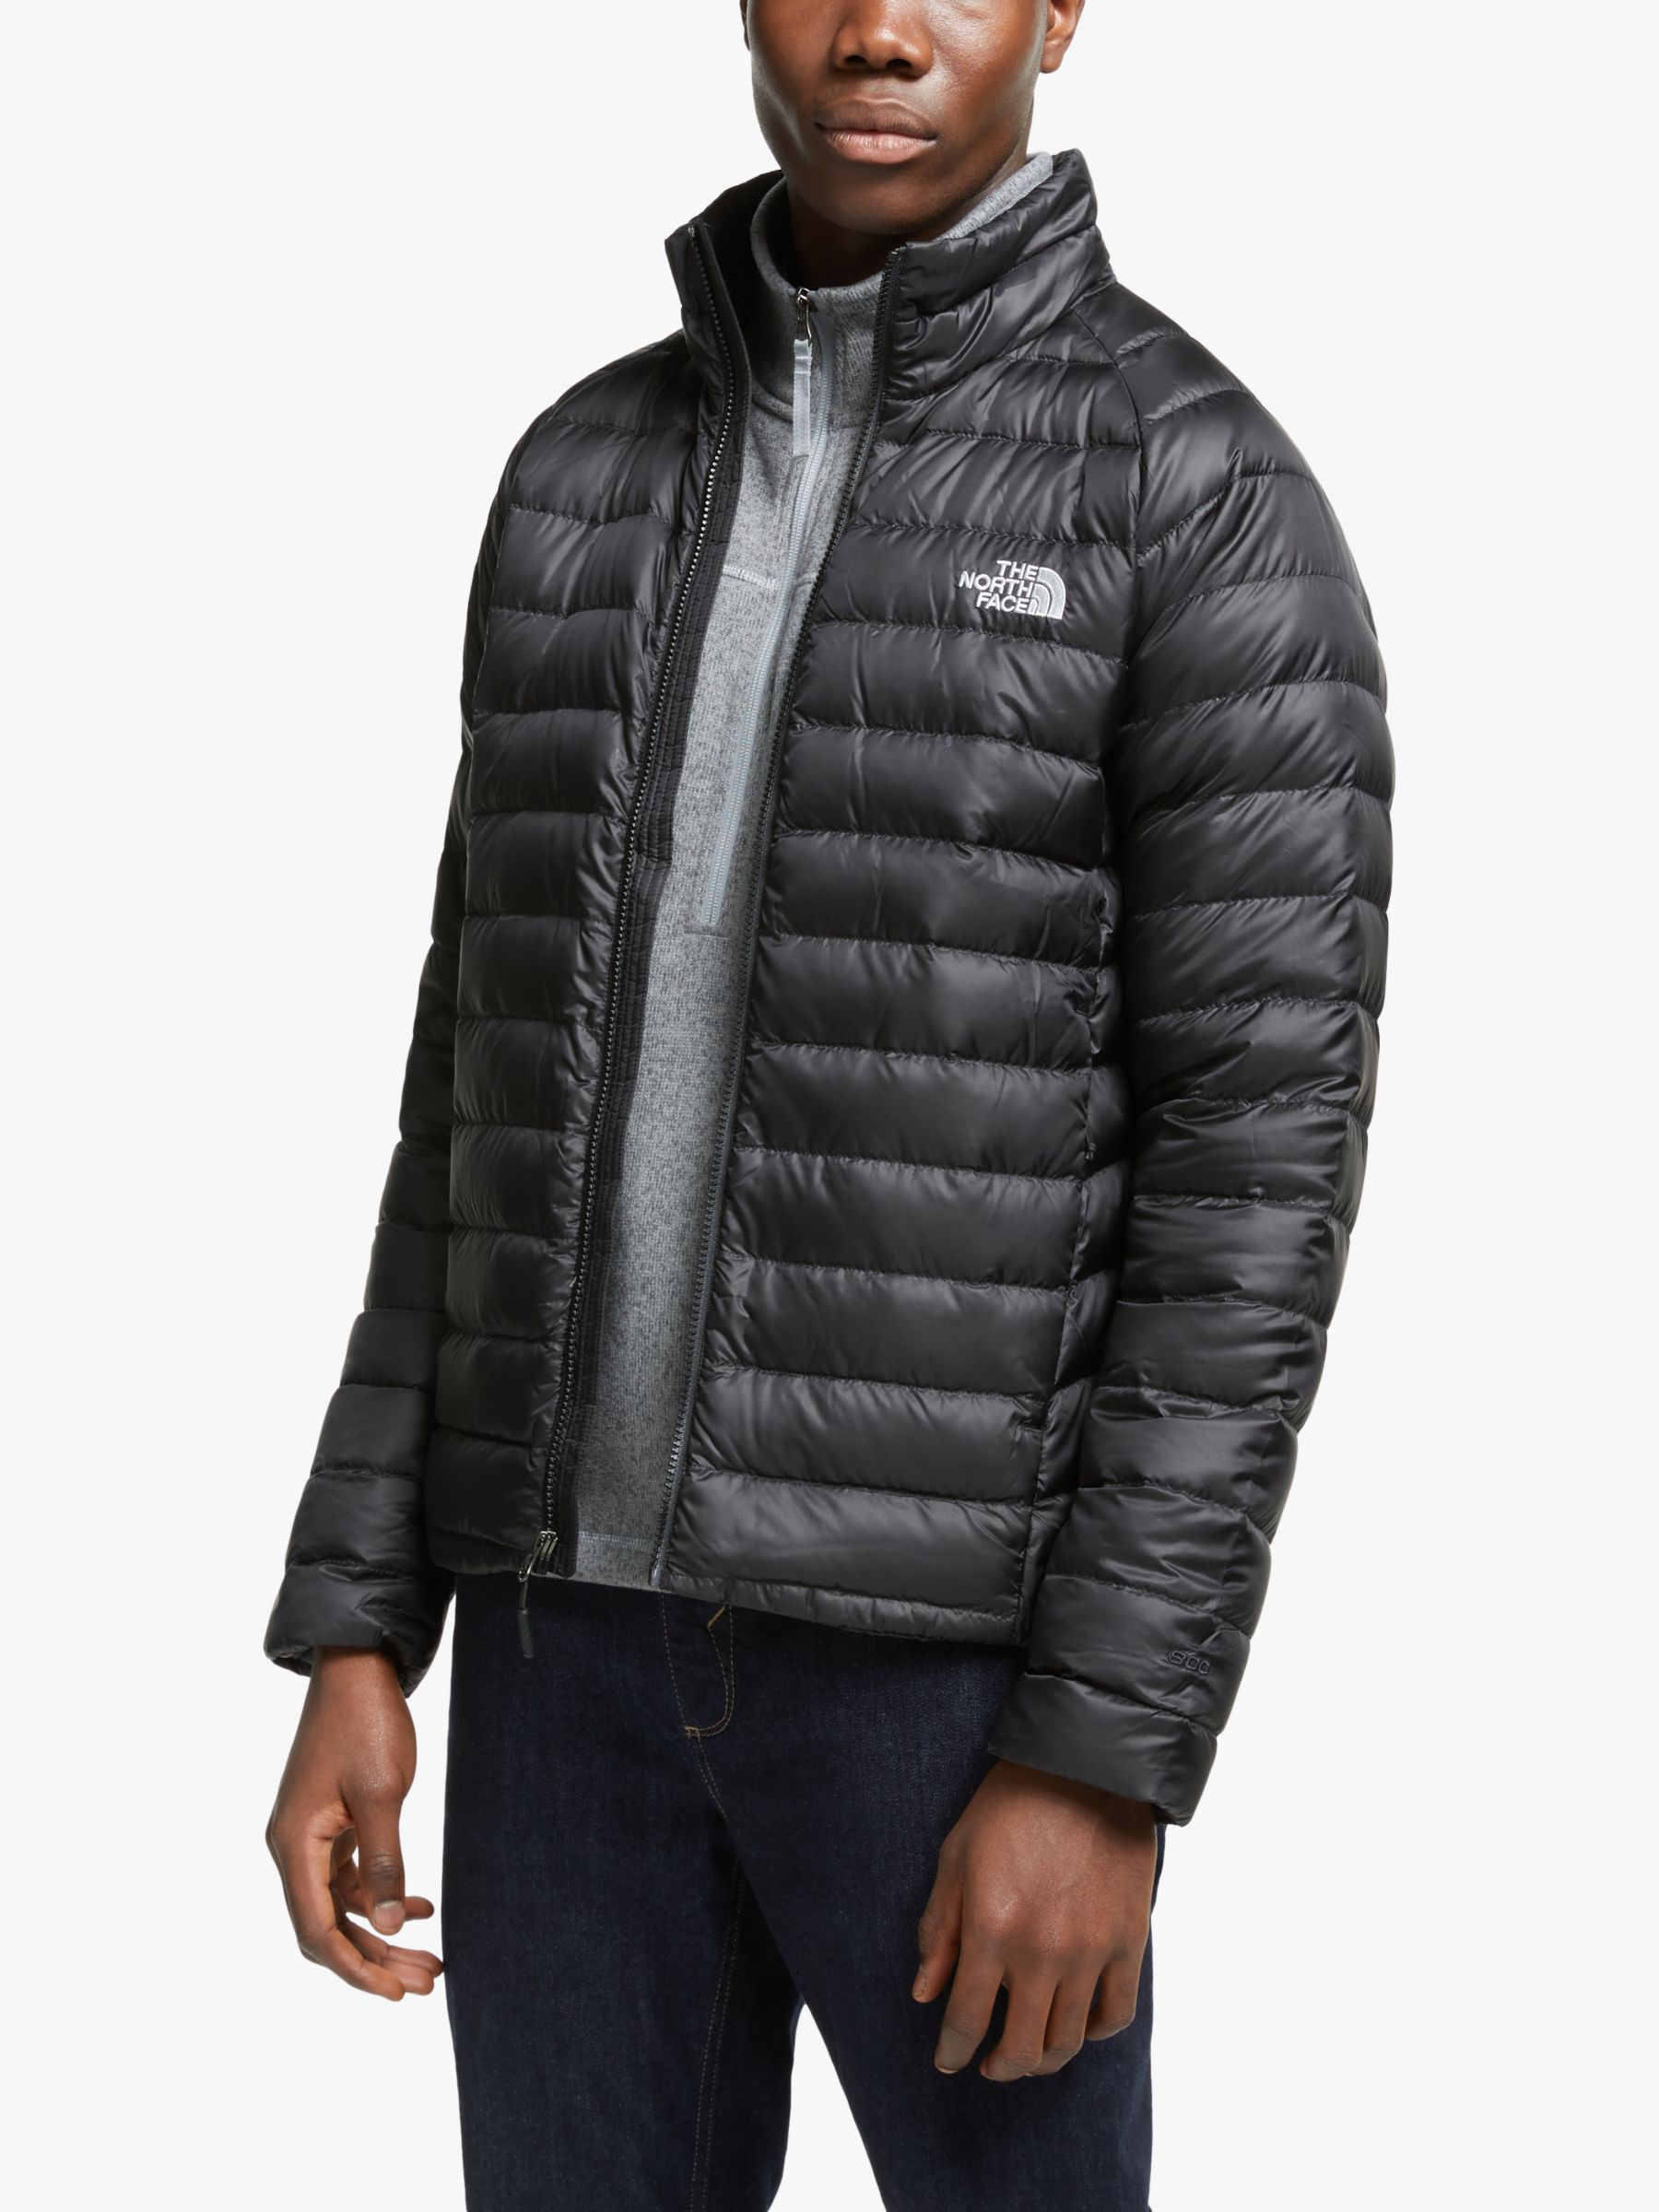 The North Face The North Face Men's Waterproof Trevail Jacket, Black